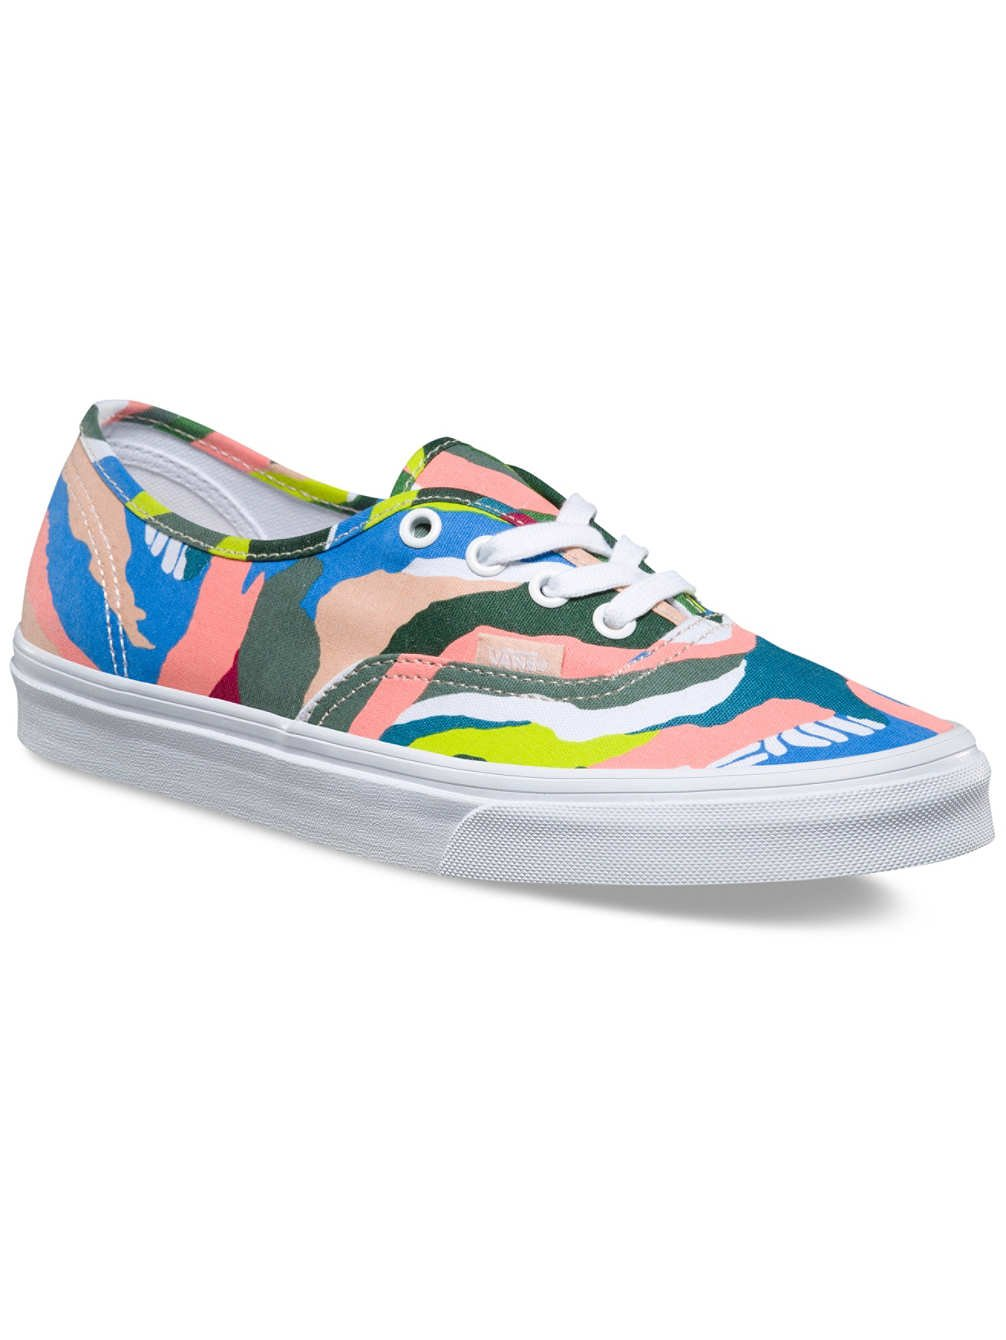 Vans Authentic B06XD34L6N 7 B(M) US Women / 5.5 D(M) US Men|Abstract Horizon